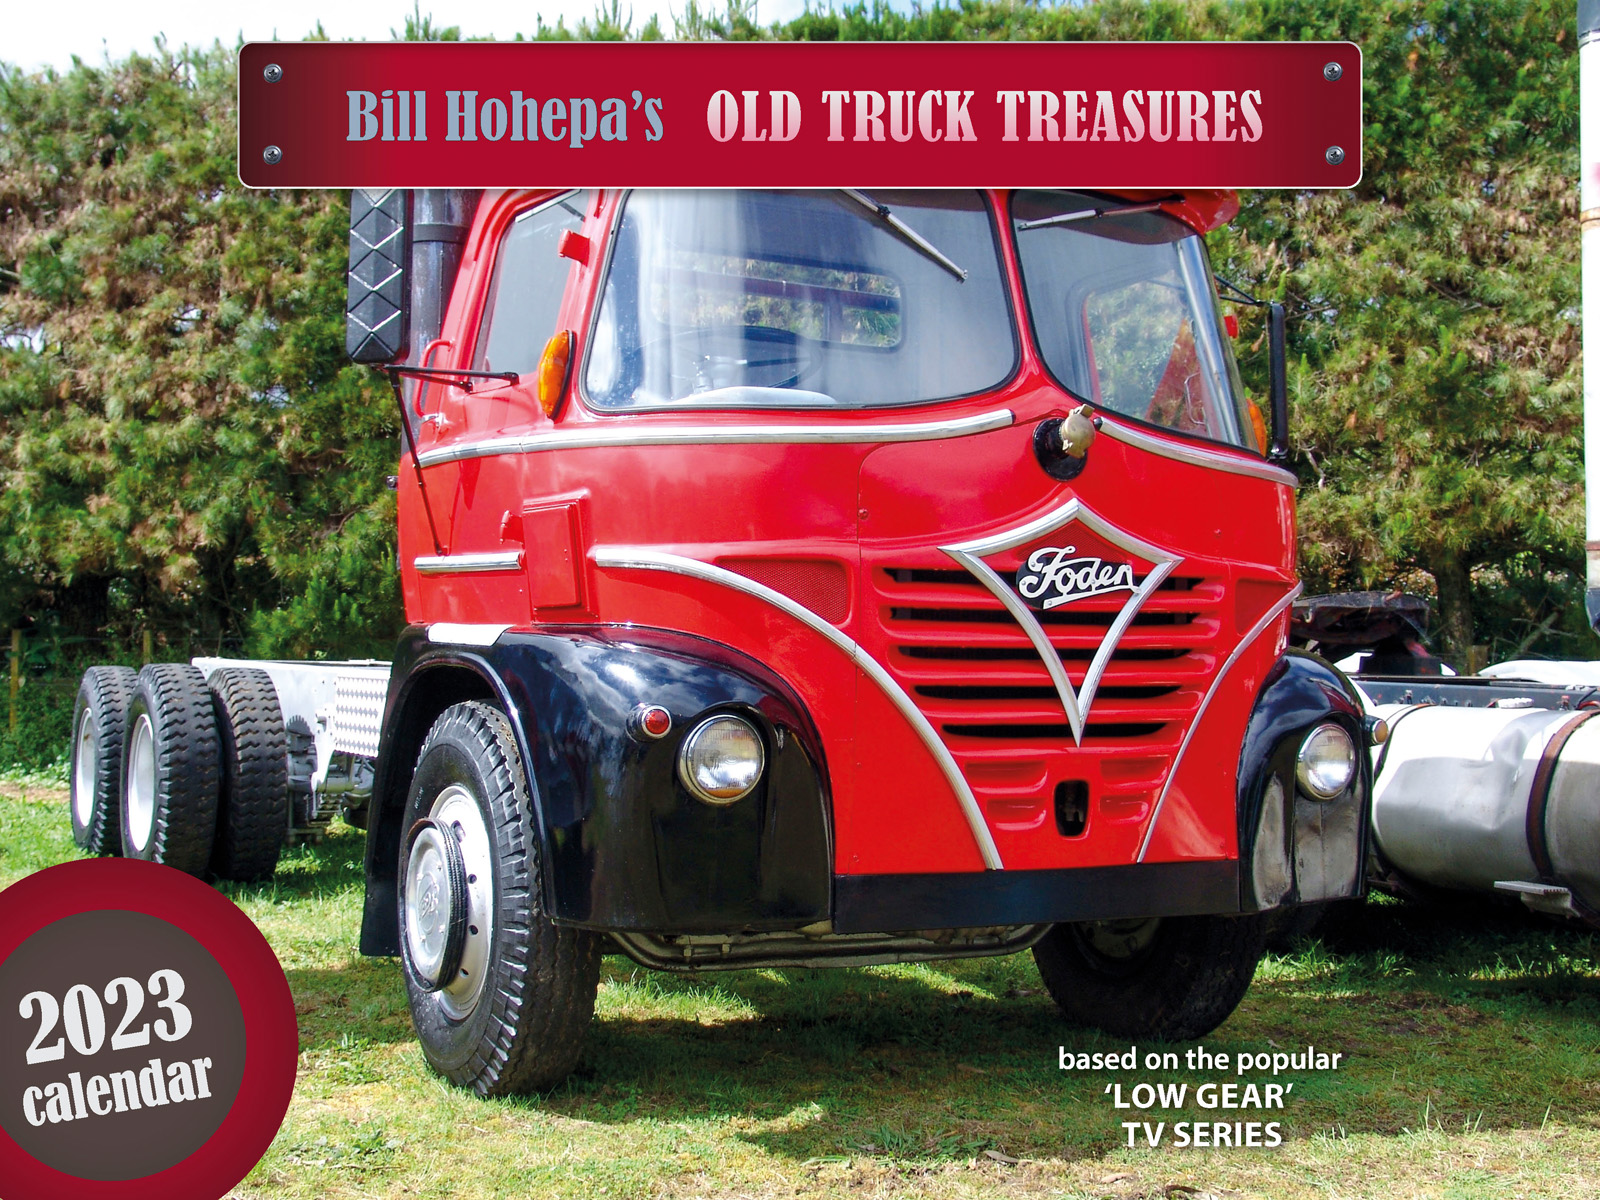 Bill Hohepa's Old Truck Treasures 2021